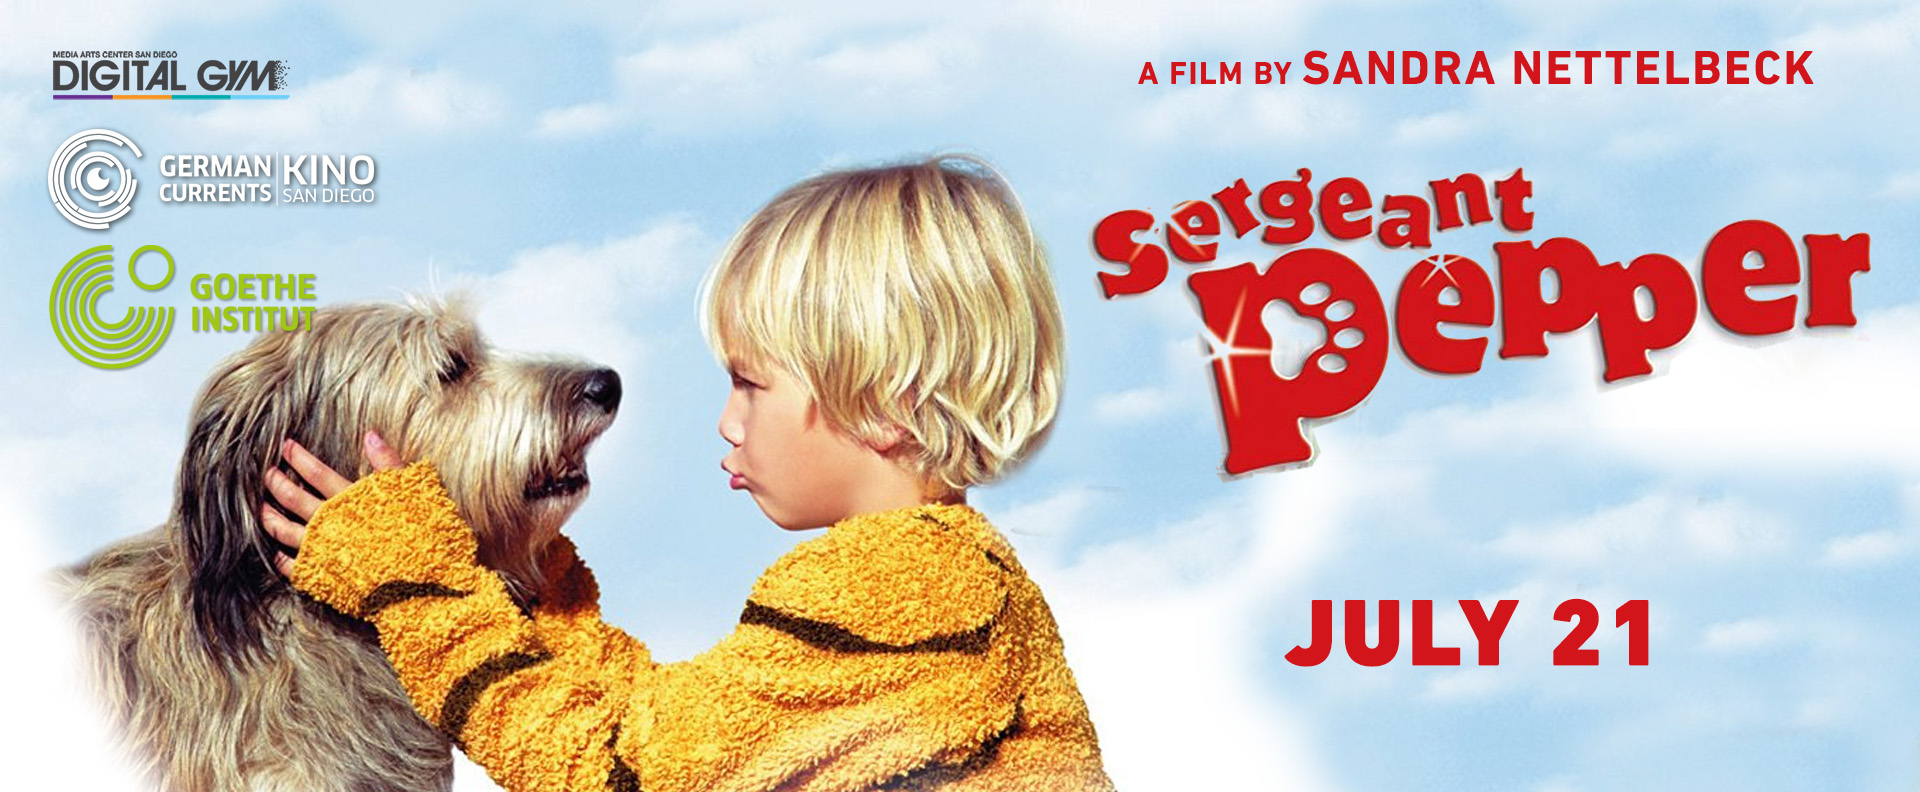 German Currents Kino Presents: Sergeant Pepper (July 21)